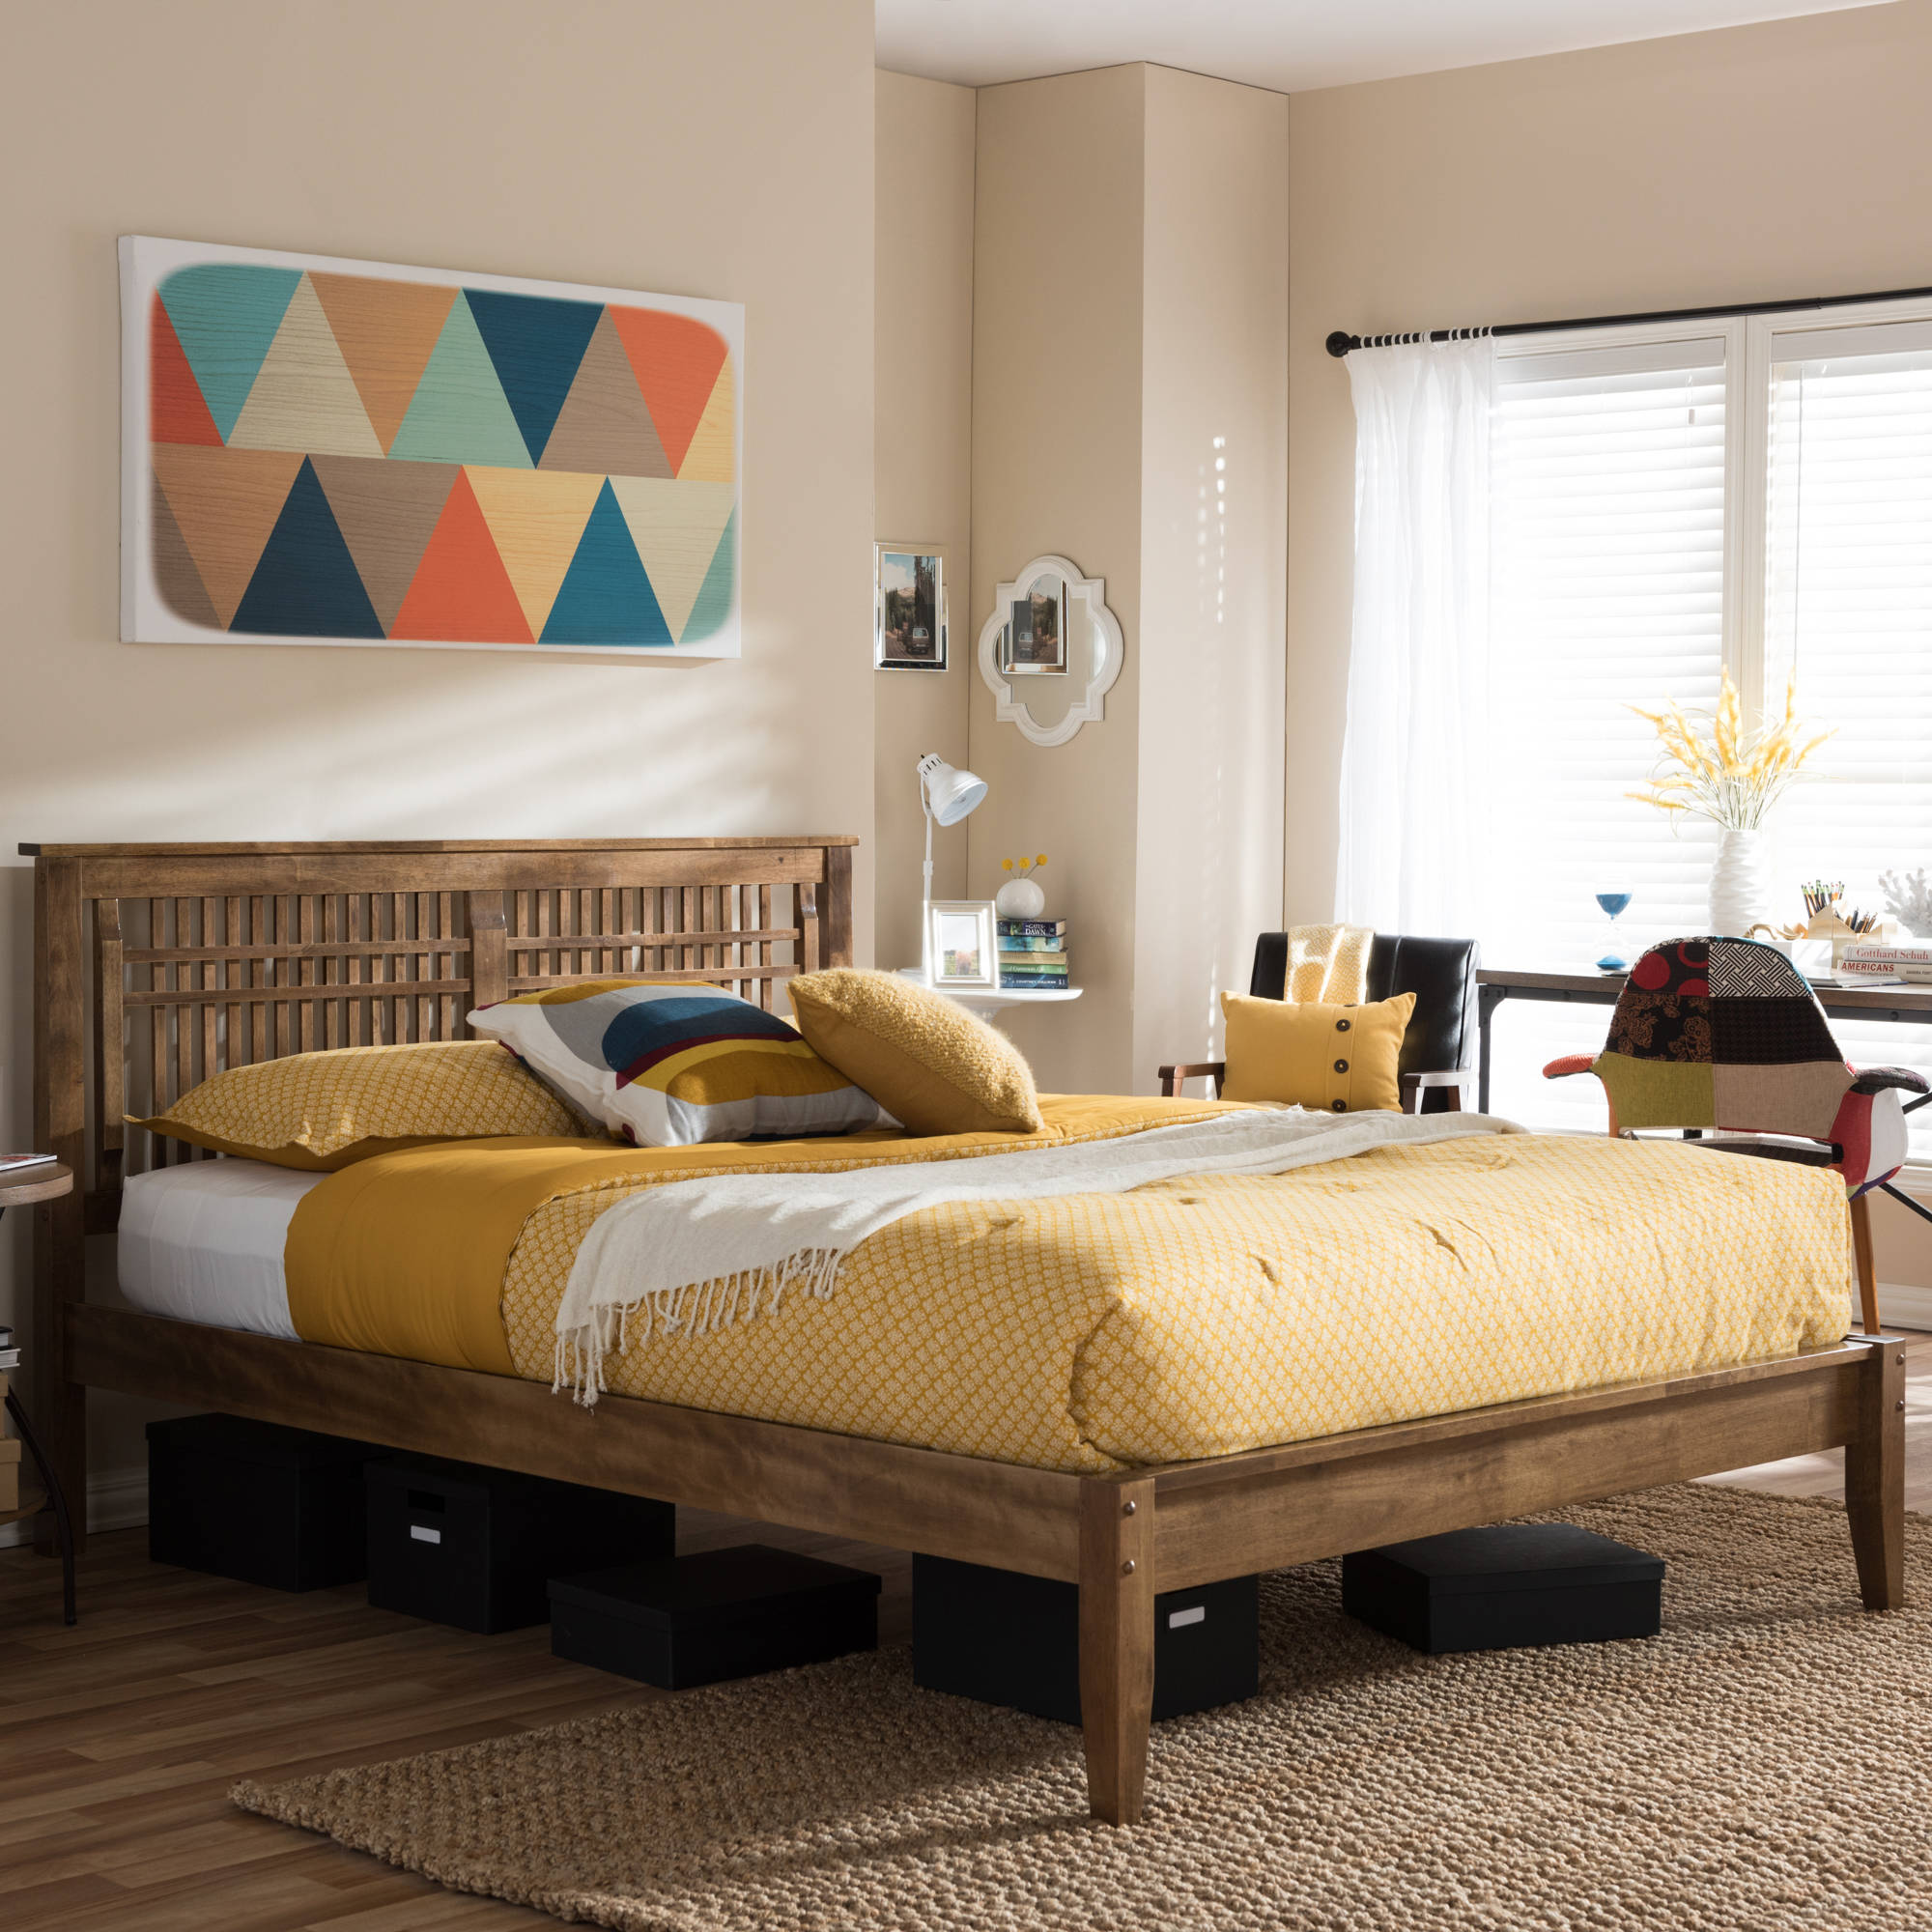 Baxton Studio Loafey Mid-Century Modern Window-Pane-Style Queen-Size Platform Bed, Solid Walnut Wood